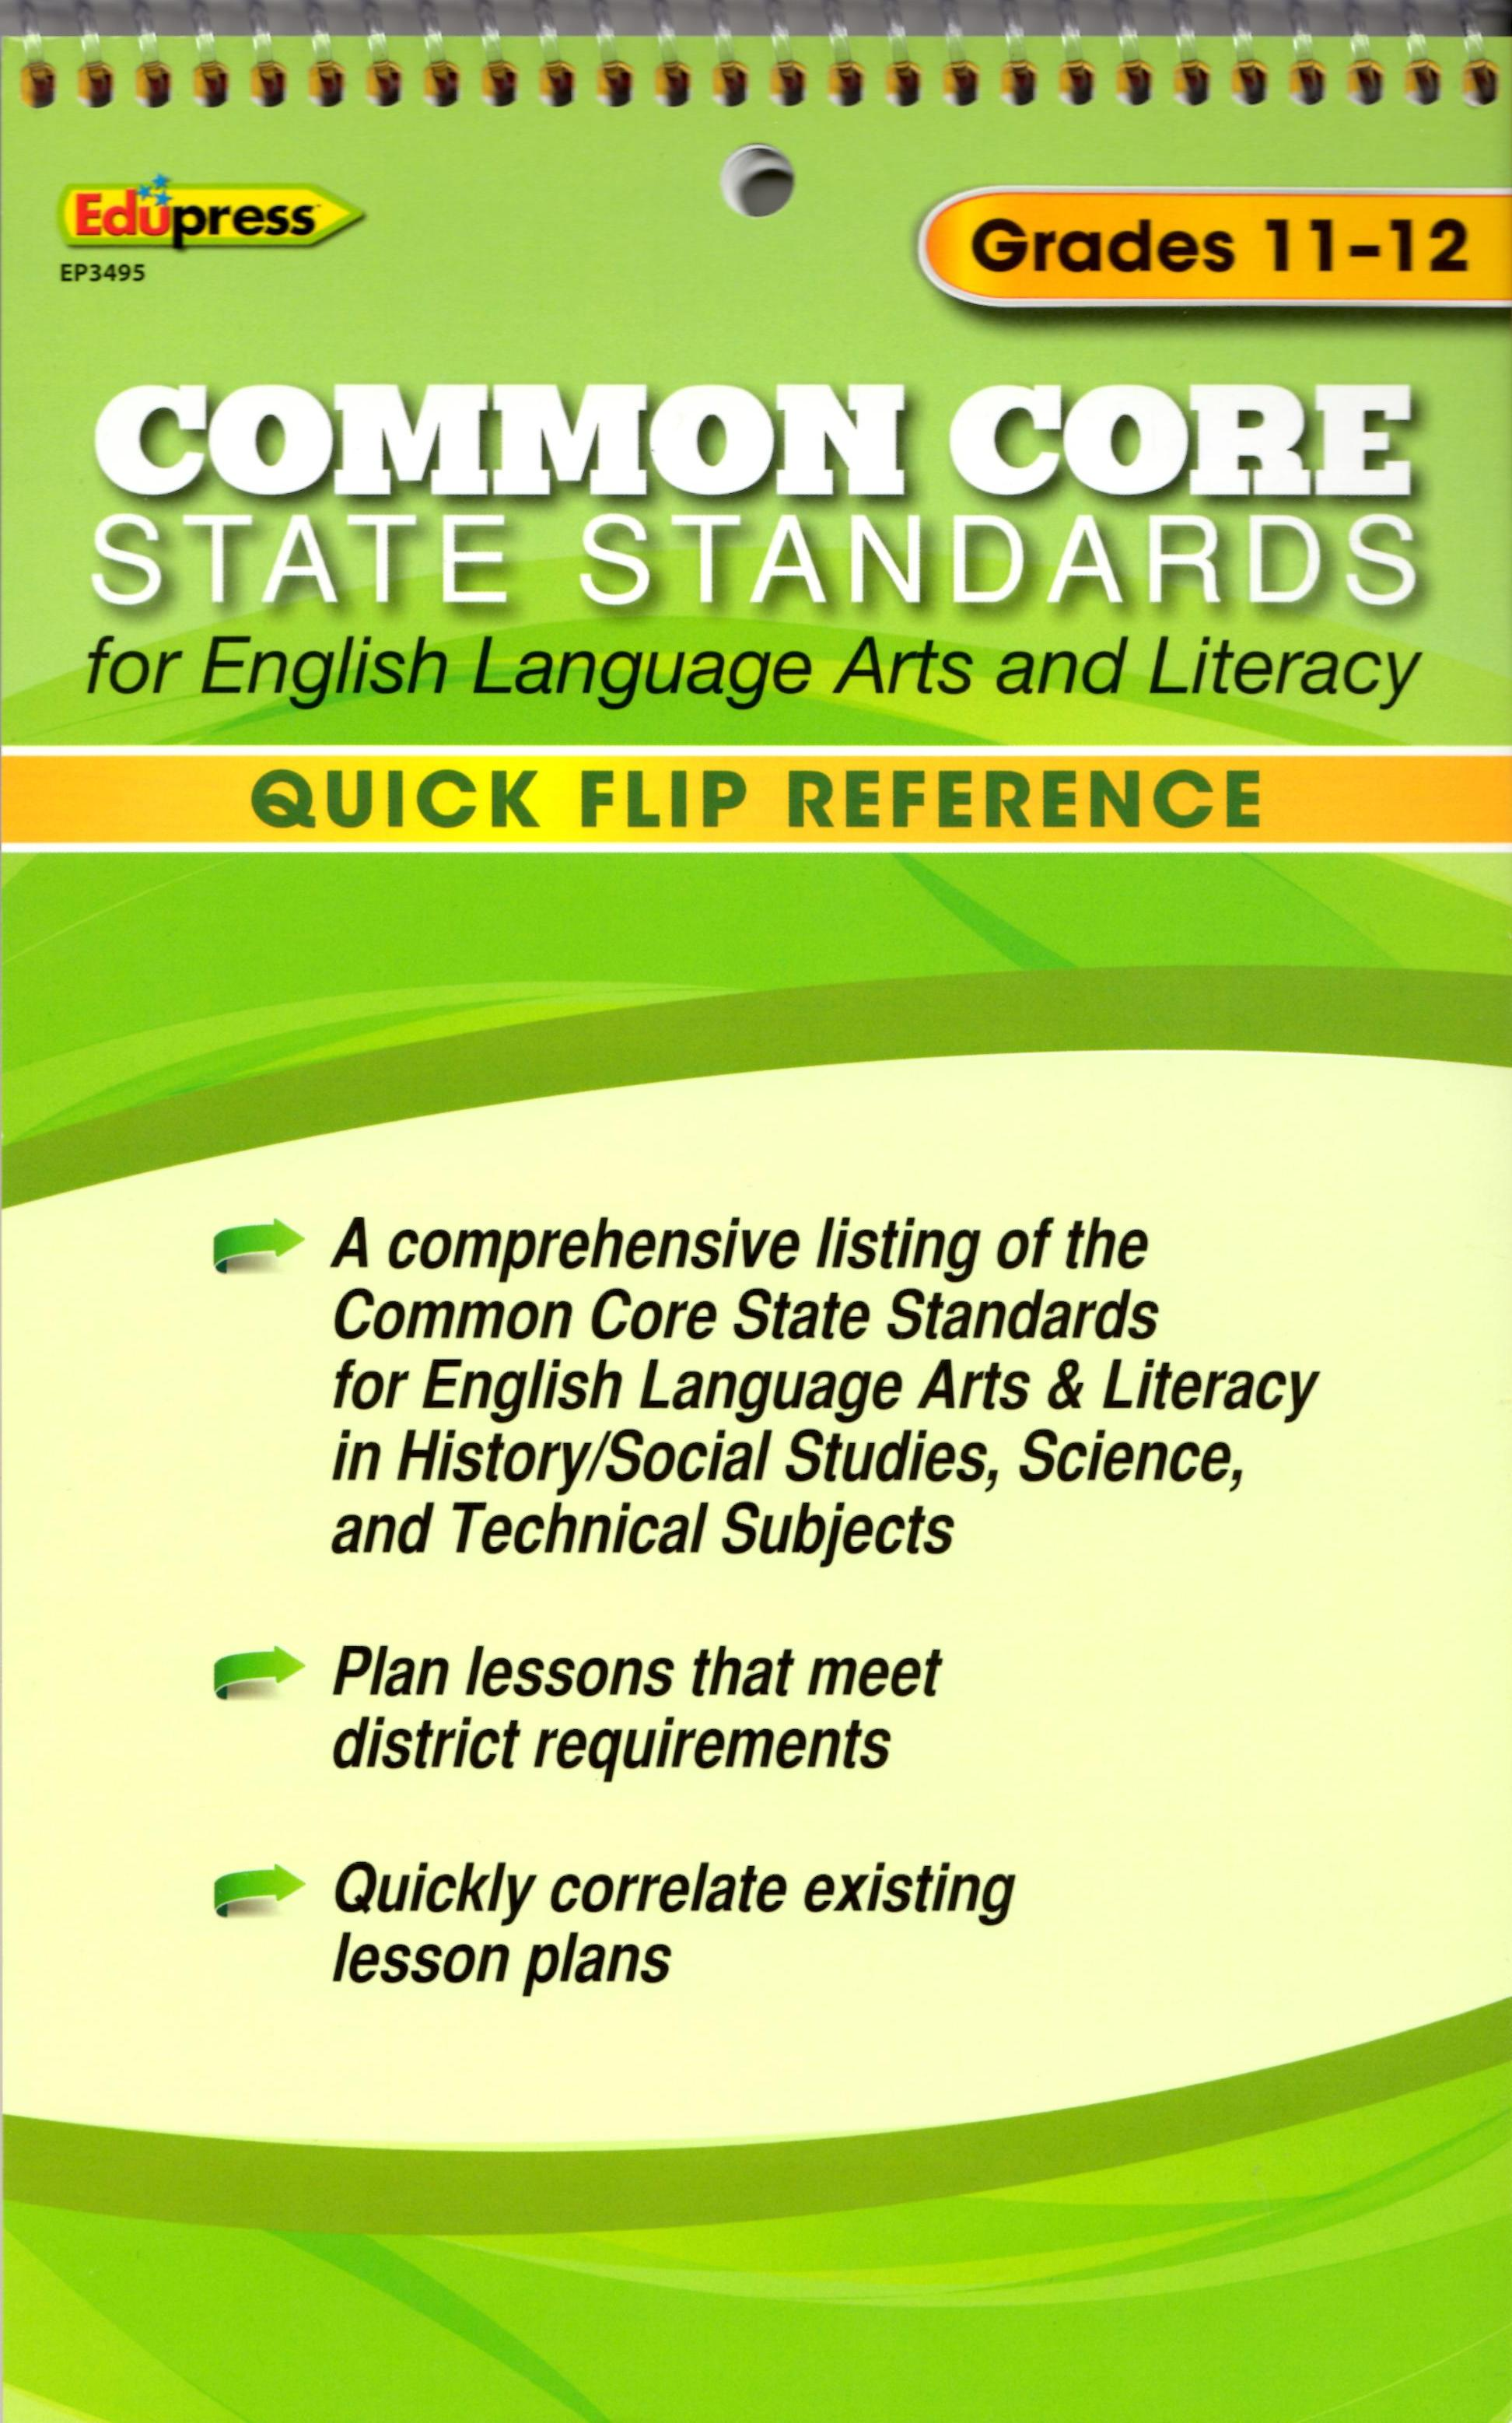 Common Core State Standards - Grade 11-12